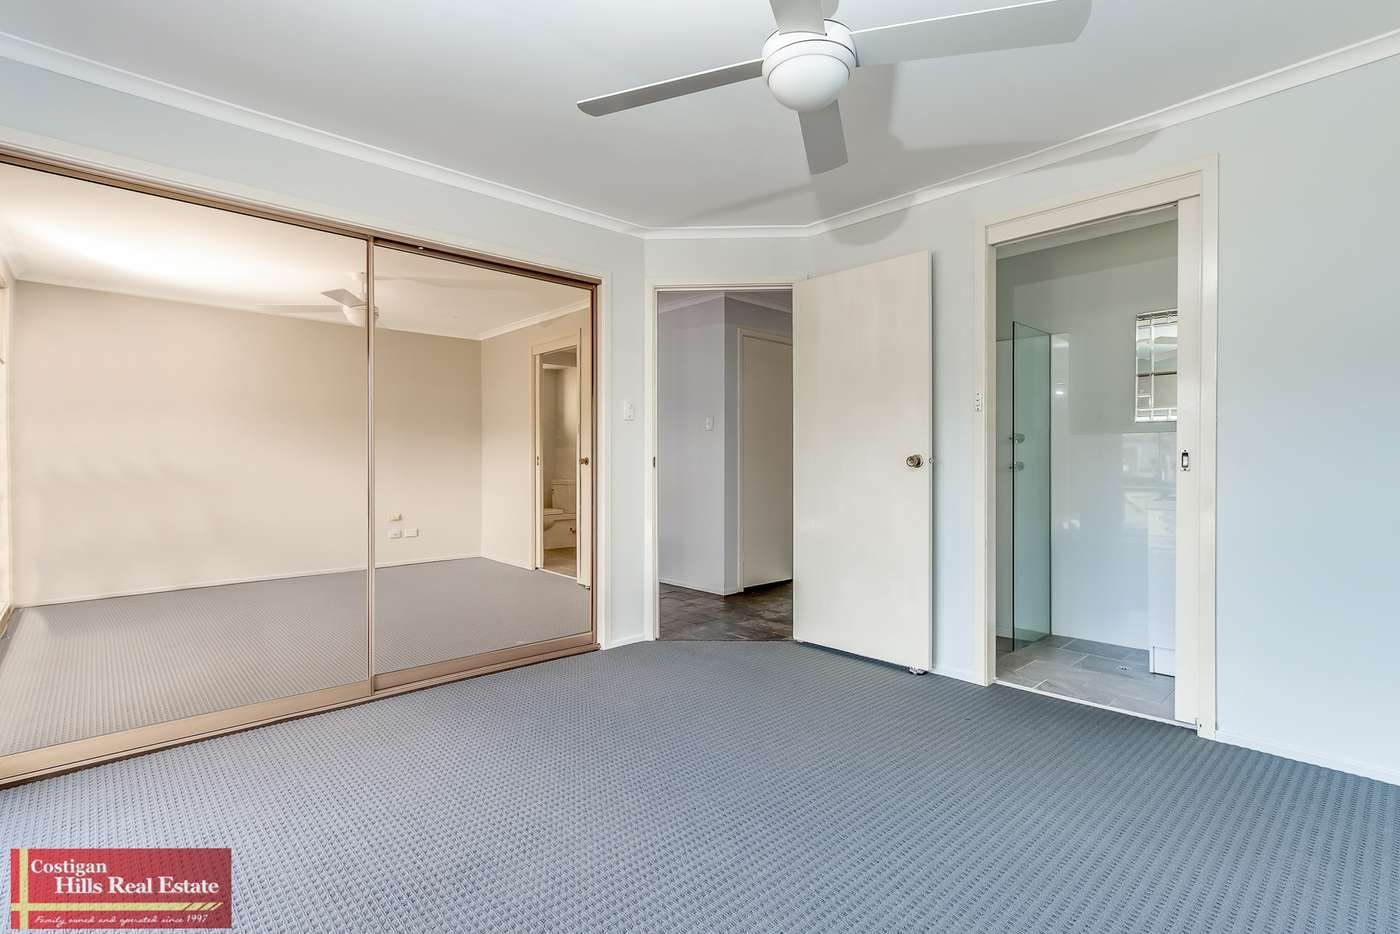 Sixth view of Homely house listing, 116 Tambaroora Crescent, Marayong NSW 2148